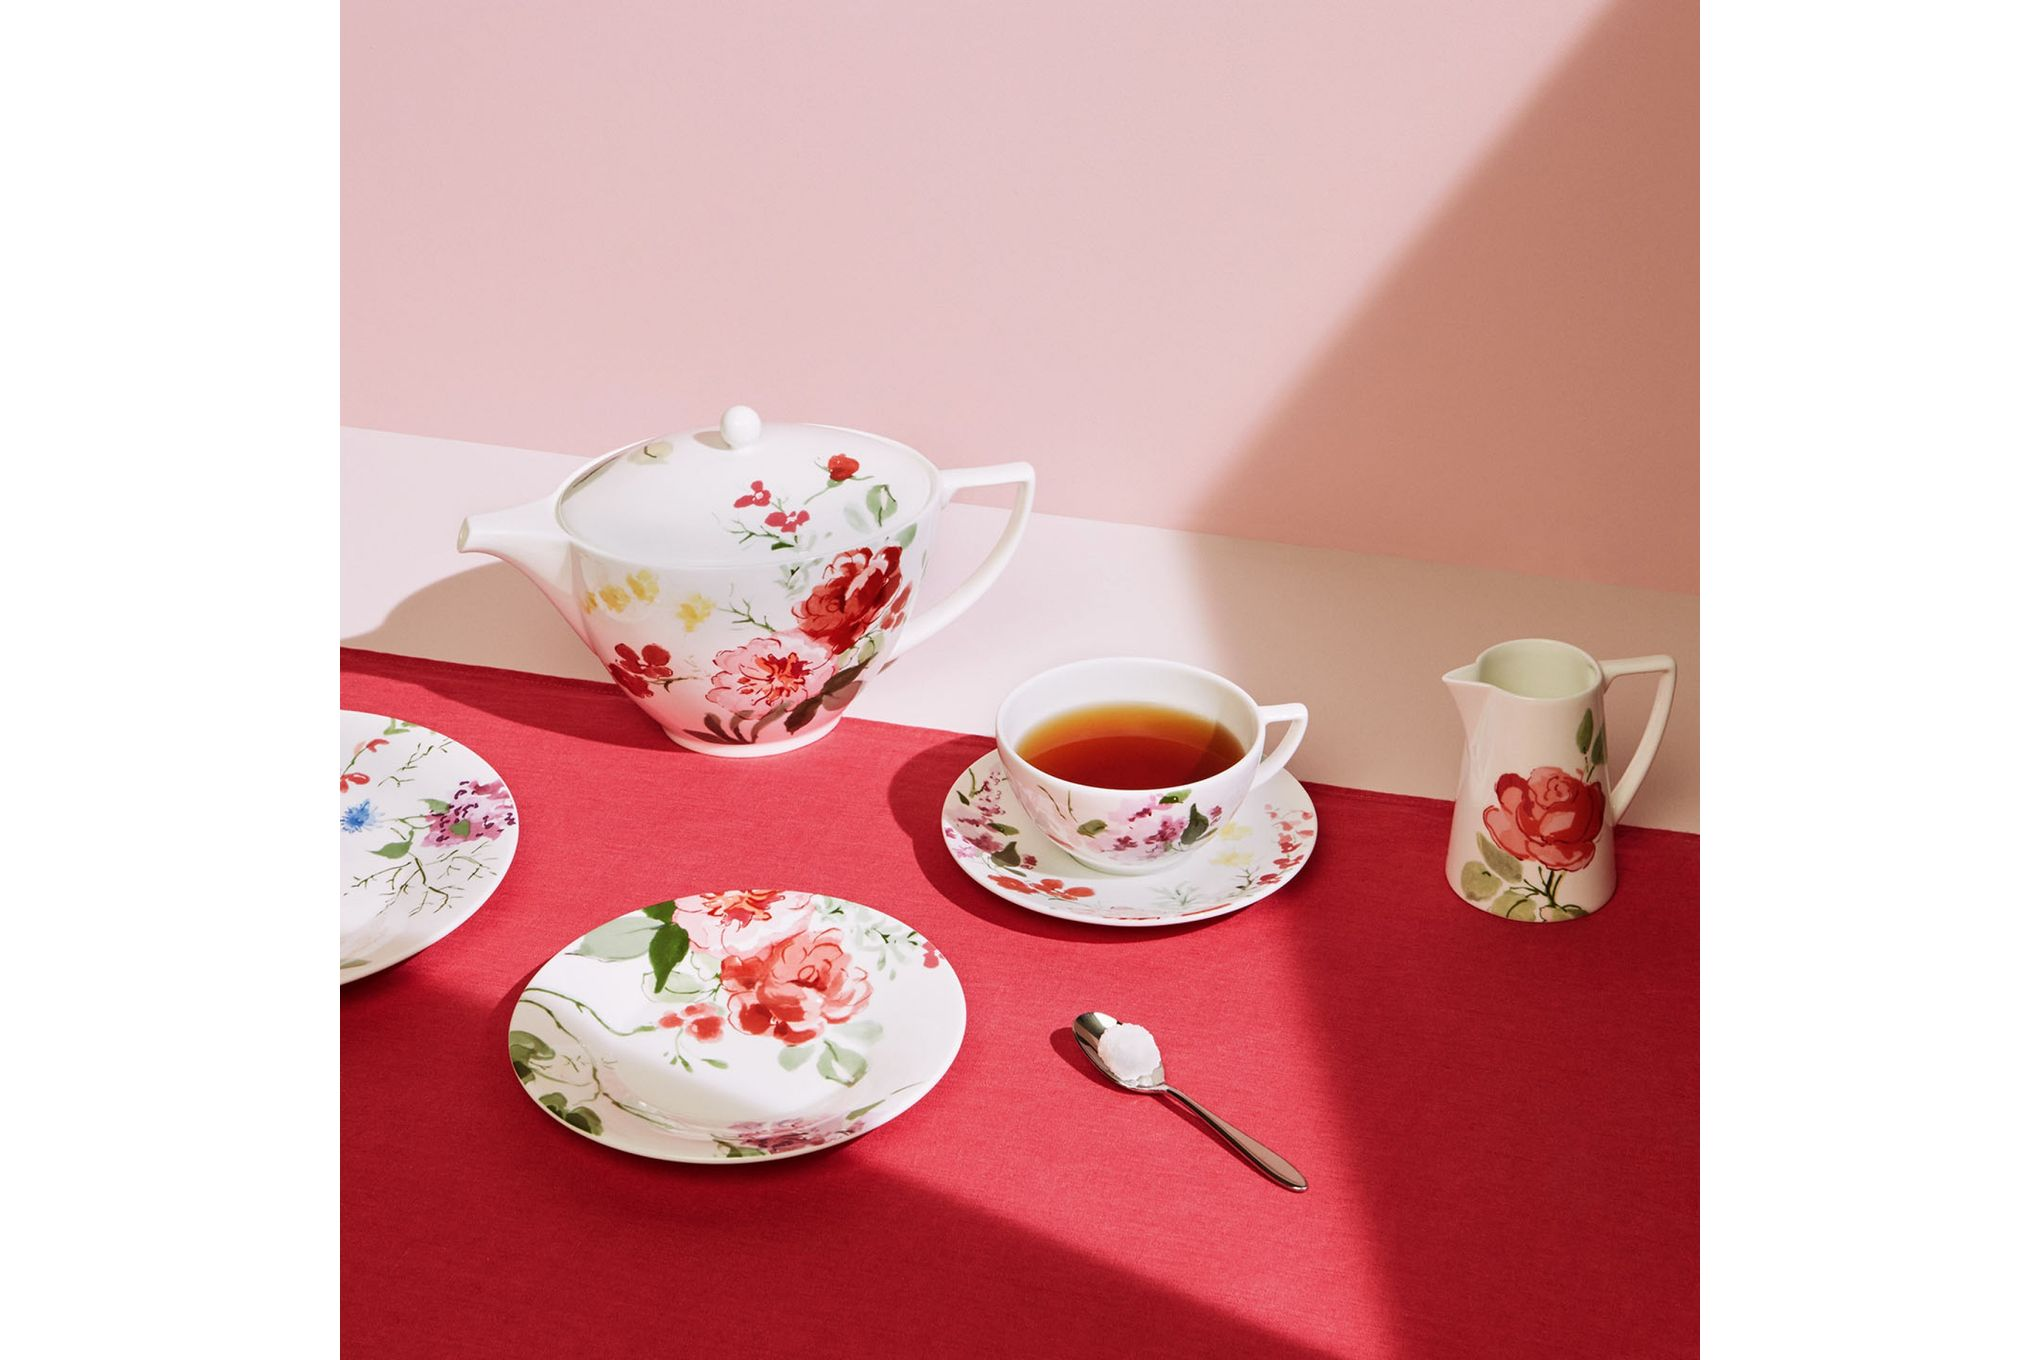 Jasper Conran for Wedgwood Floral Teacup thumb 2